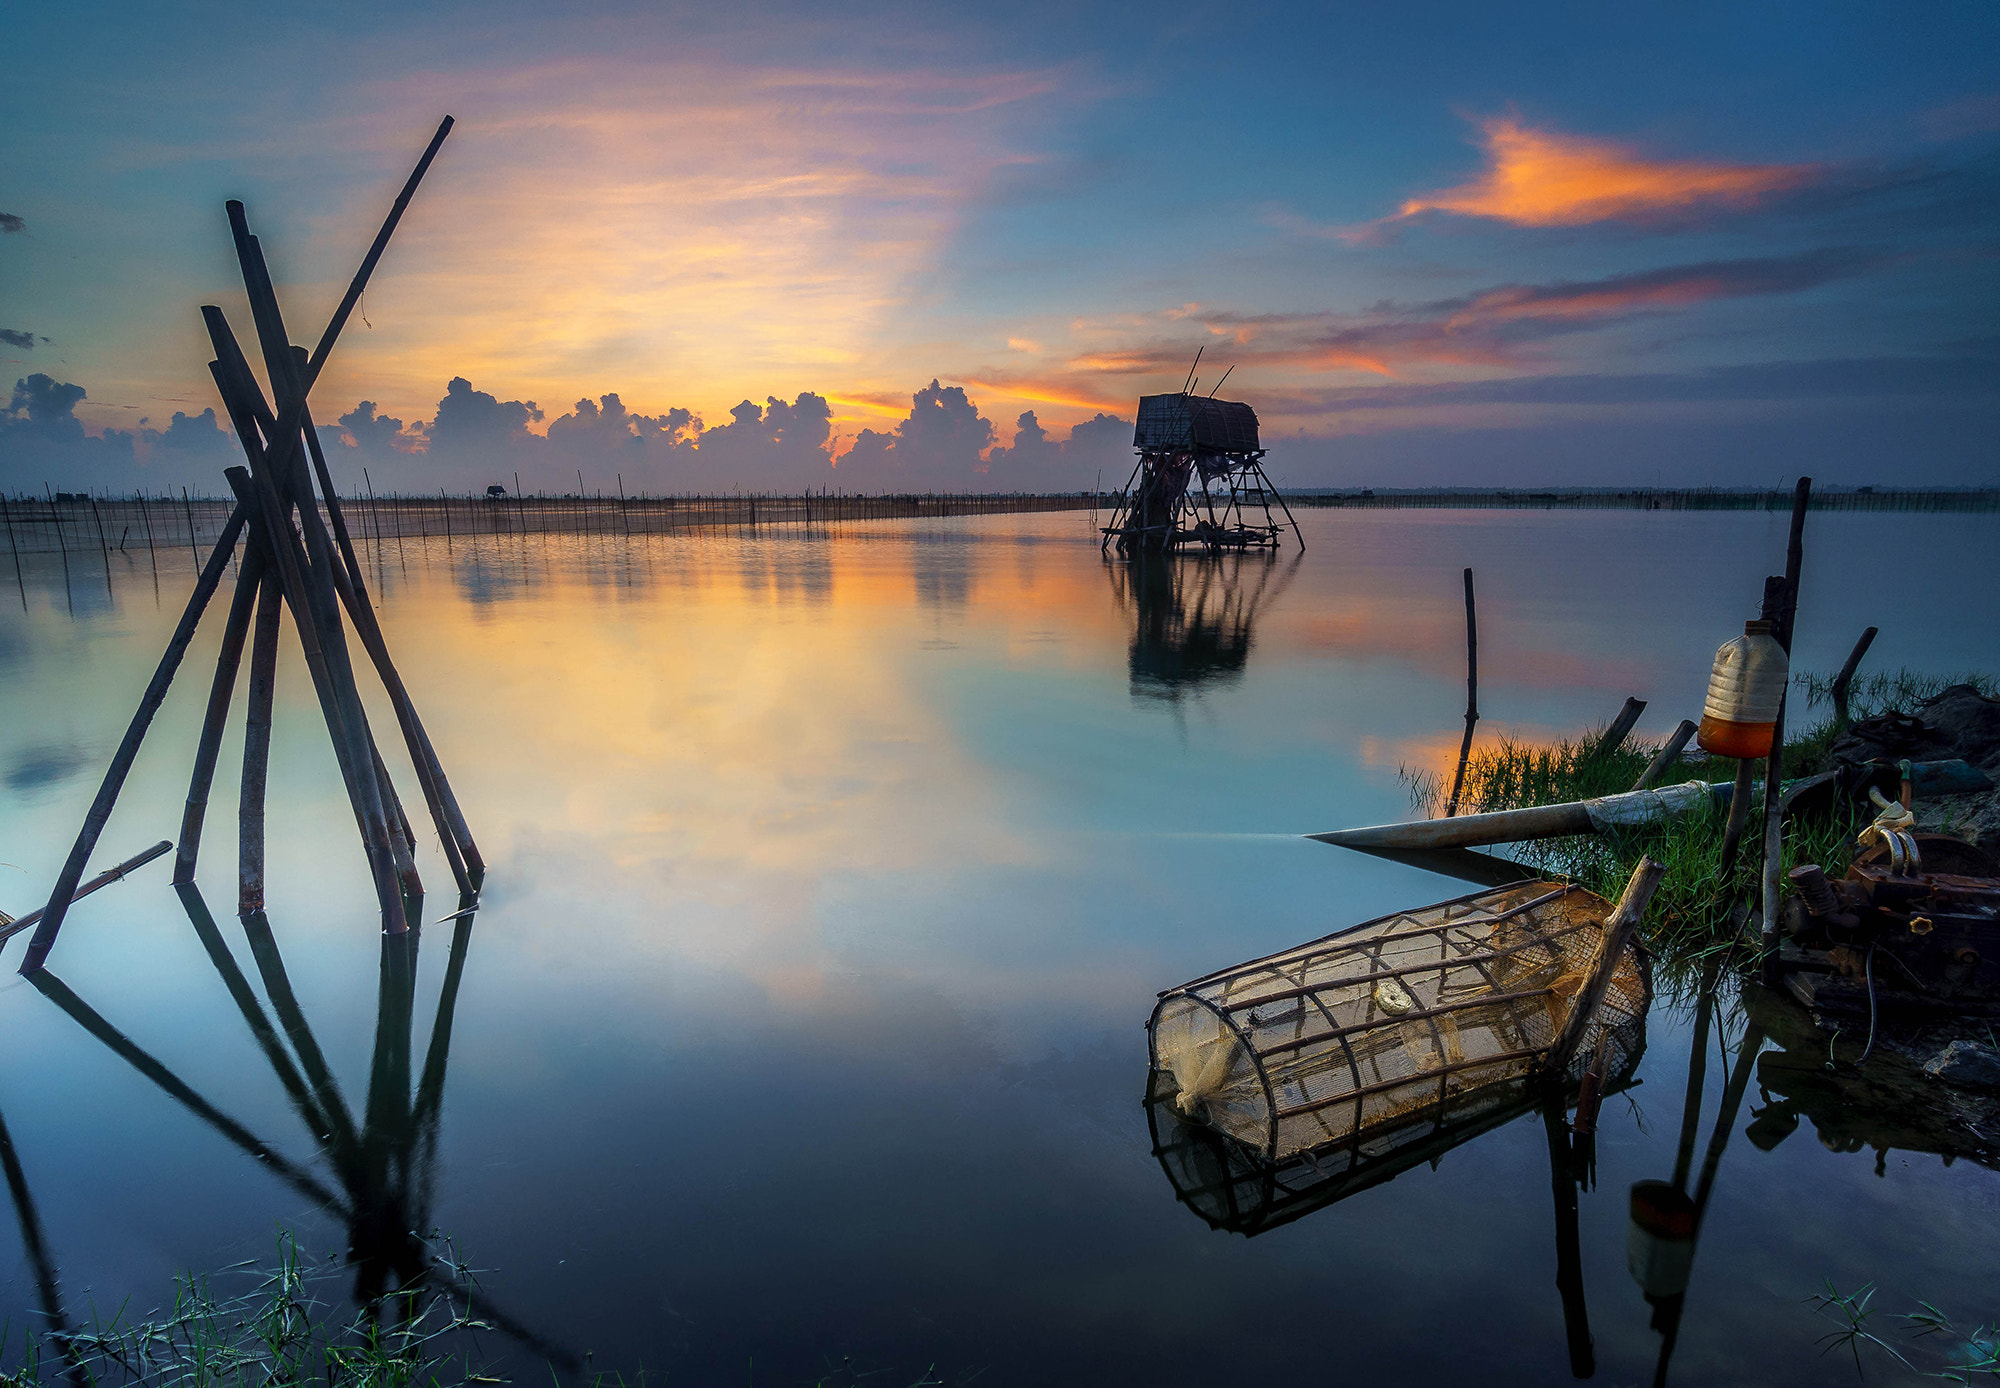 Photograph Morning in Chuon lagoon by Pham Ty on 500px